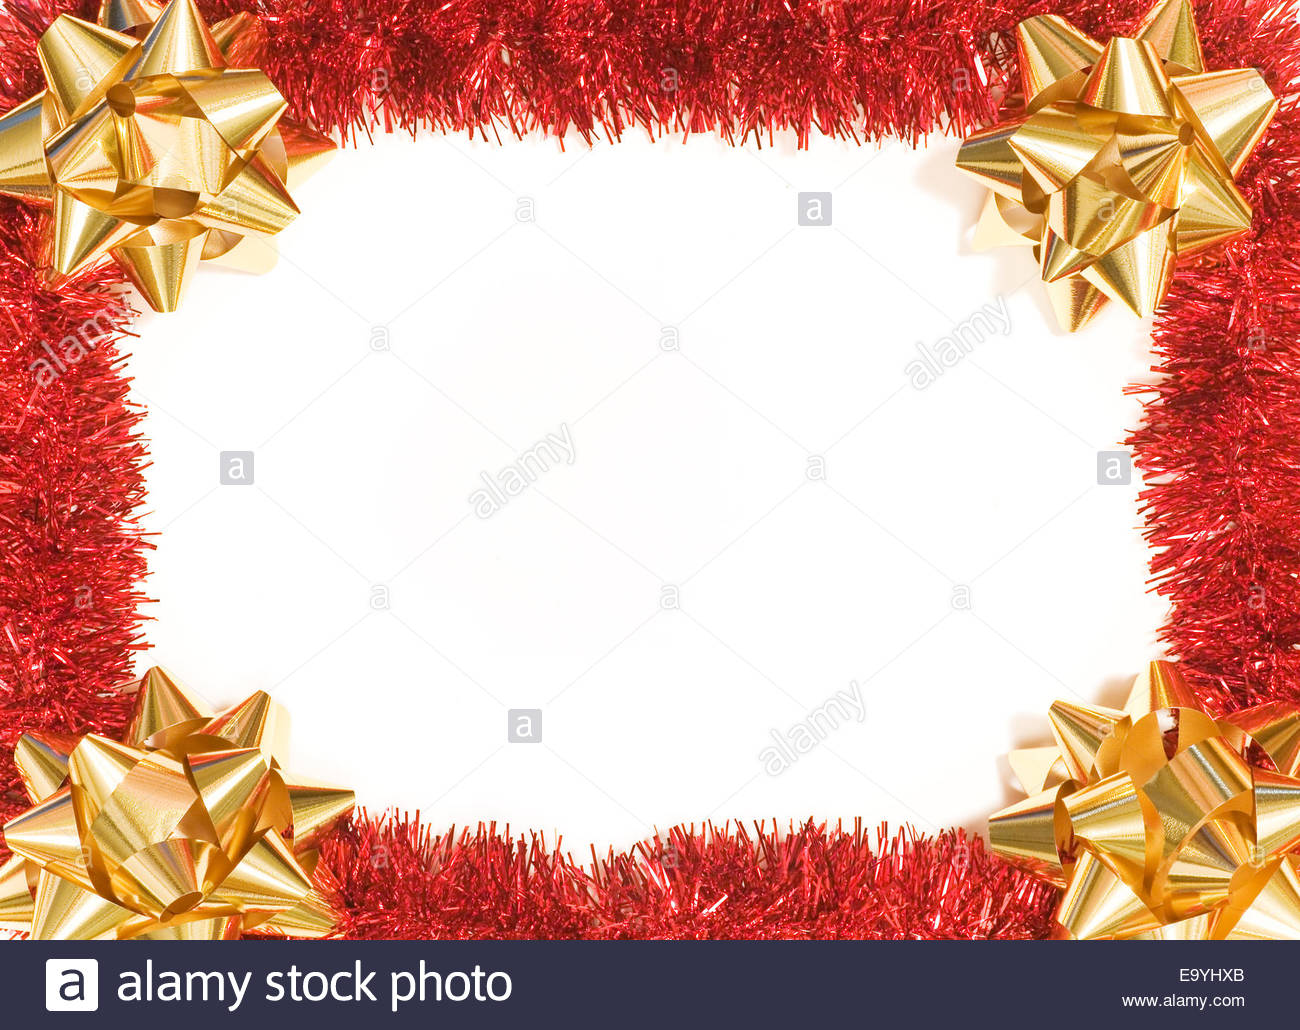 Red Tinsel and gold bows as a Christmas background to frame your ...